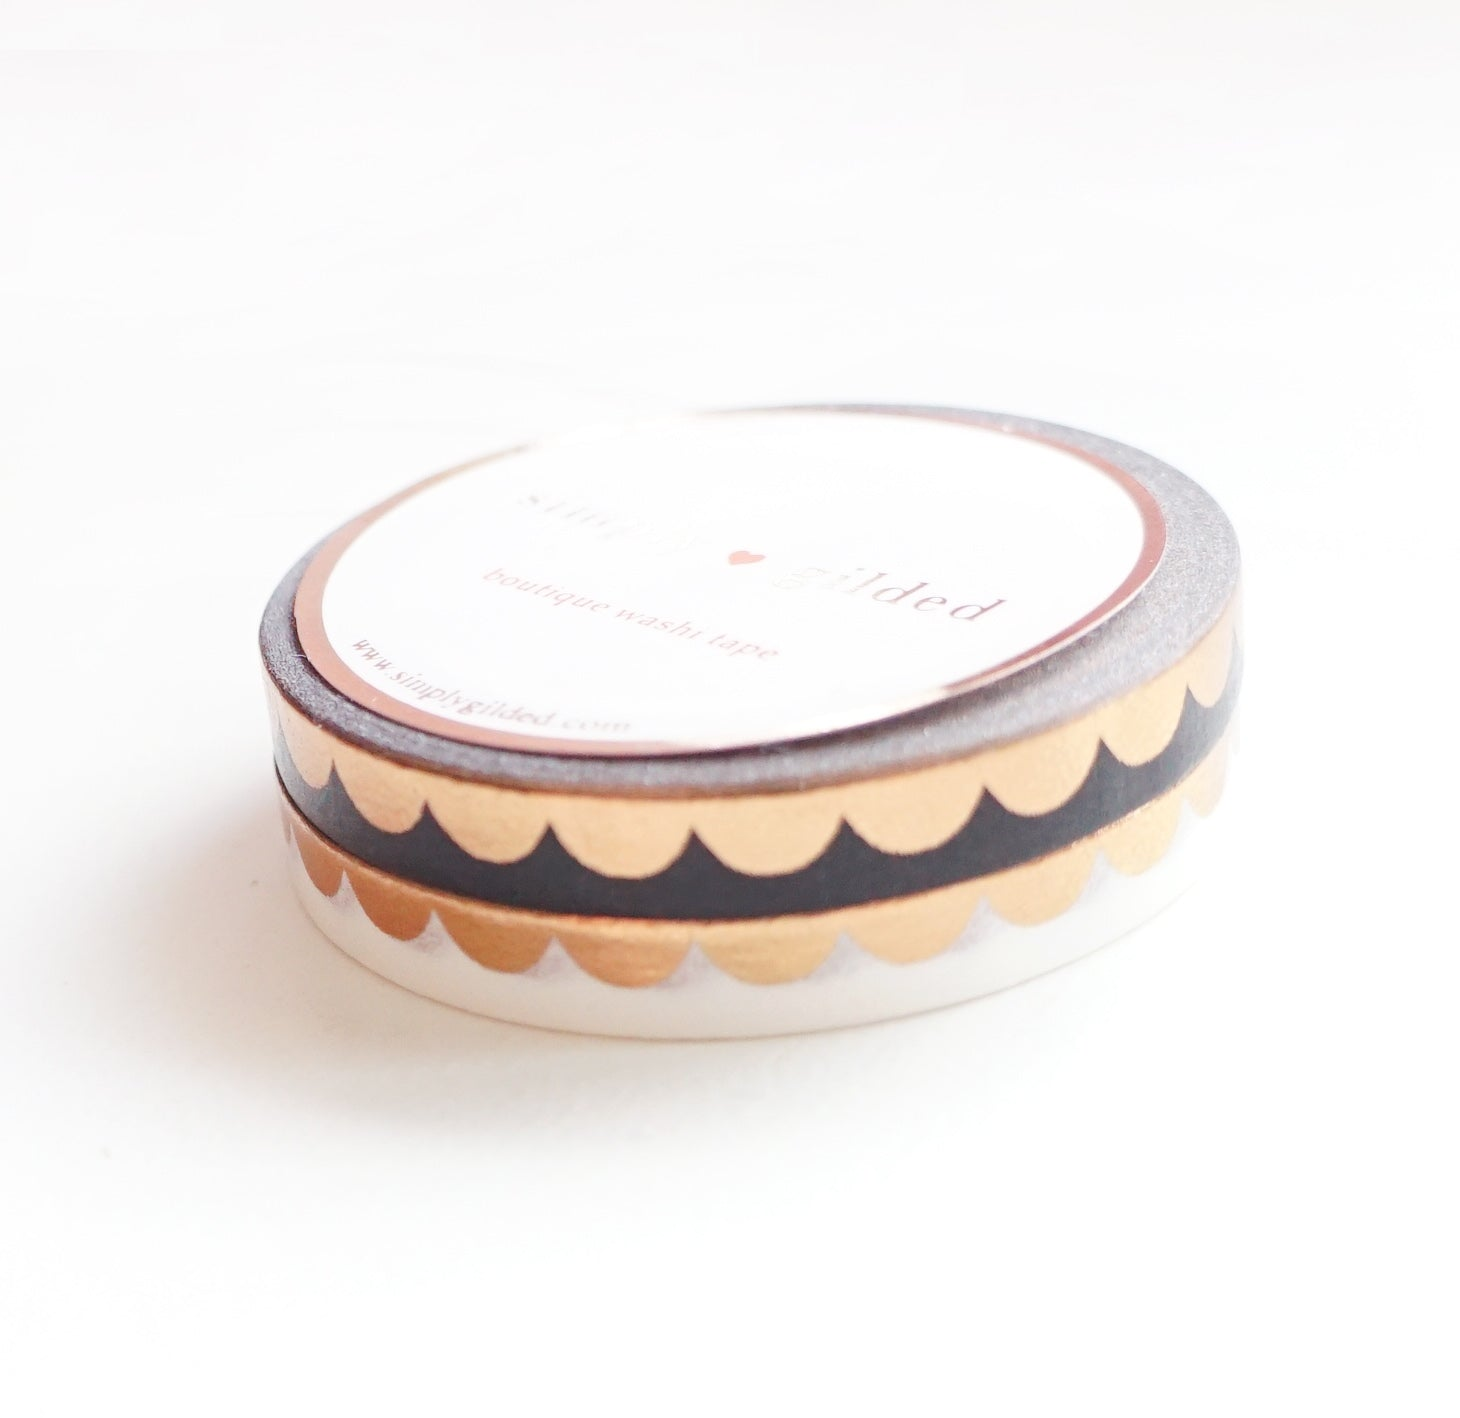 PERFORATED WASHI TAPE 6mm set of 2 - black & white SCALLOP + ROSE GOLD foil (January 31 Mini Release)